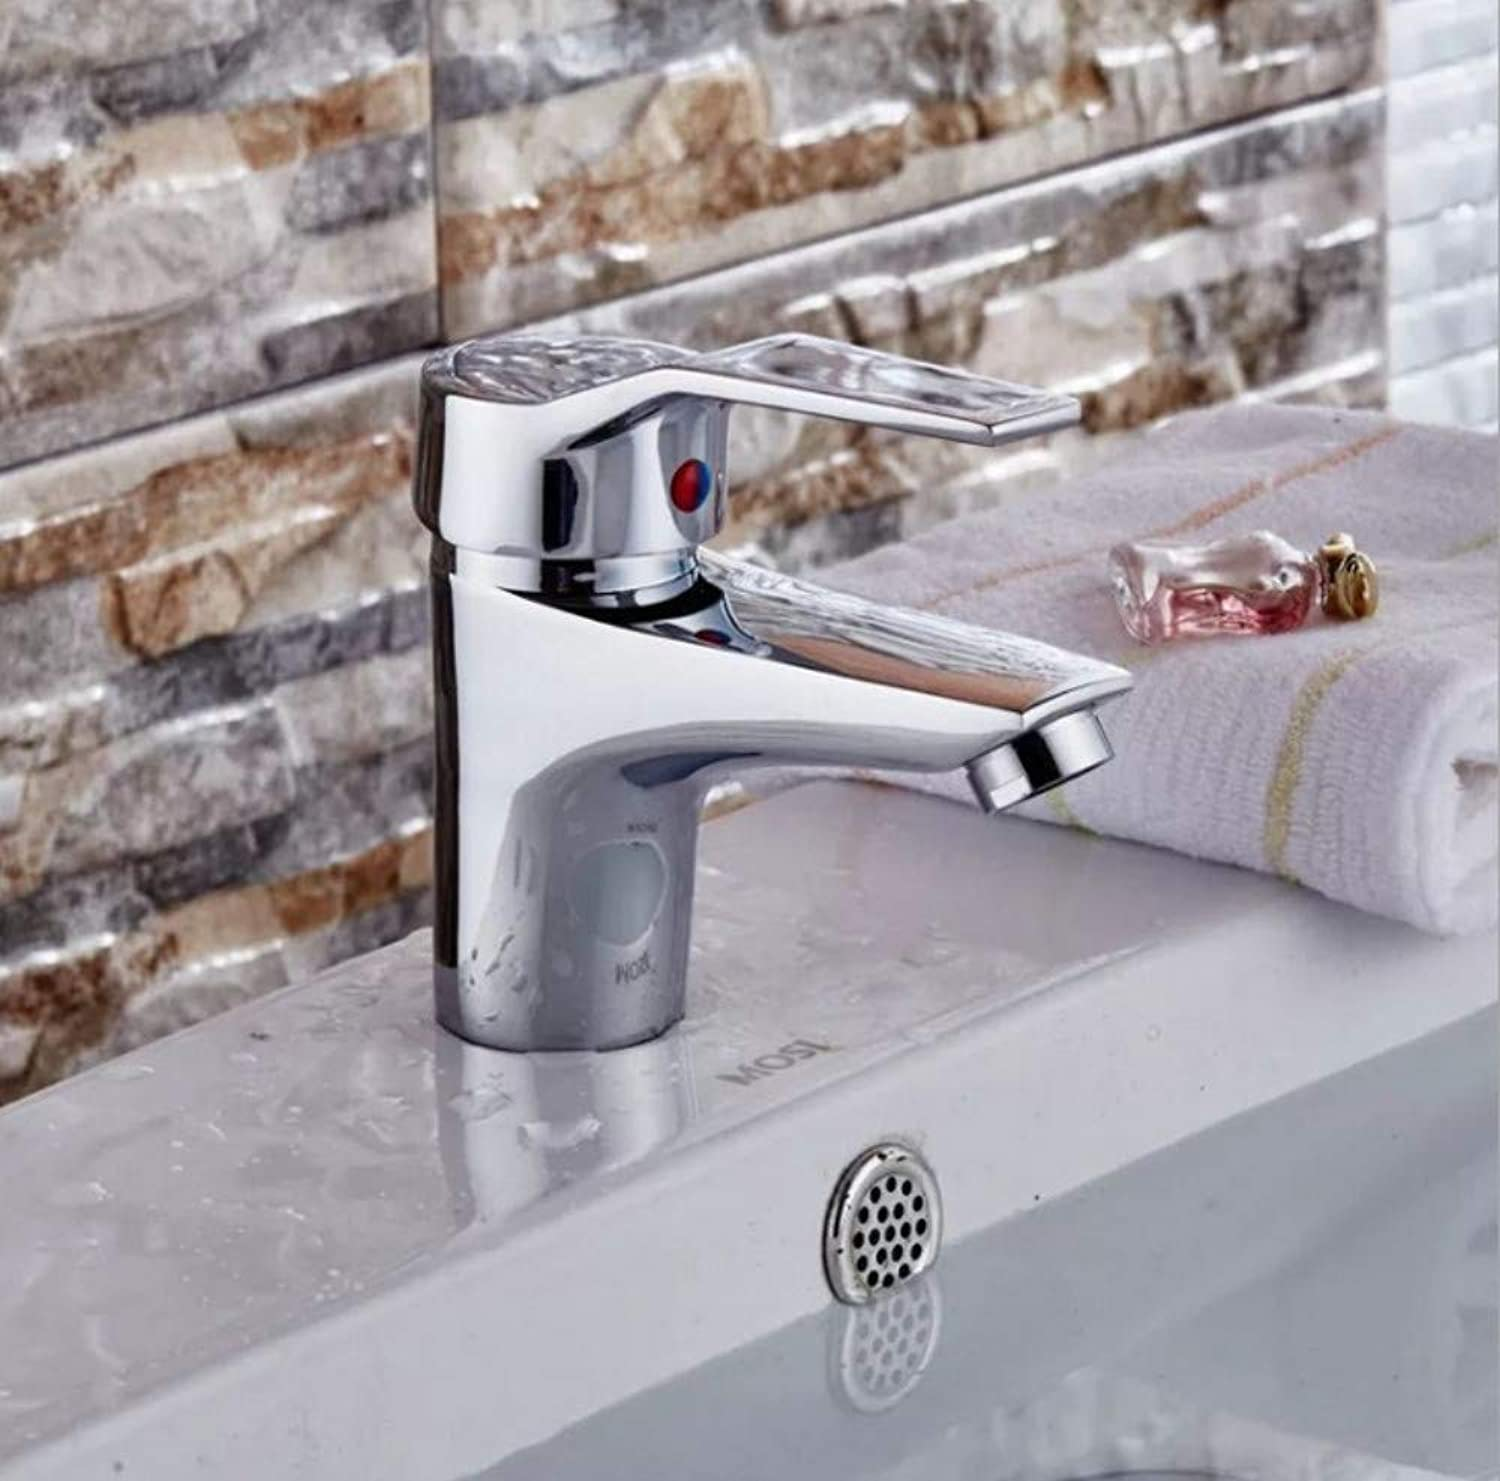 redOOY itchen Faucet Water Tap Water Saving Device Faucet Fitting Kitchen Basin Faucets